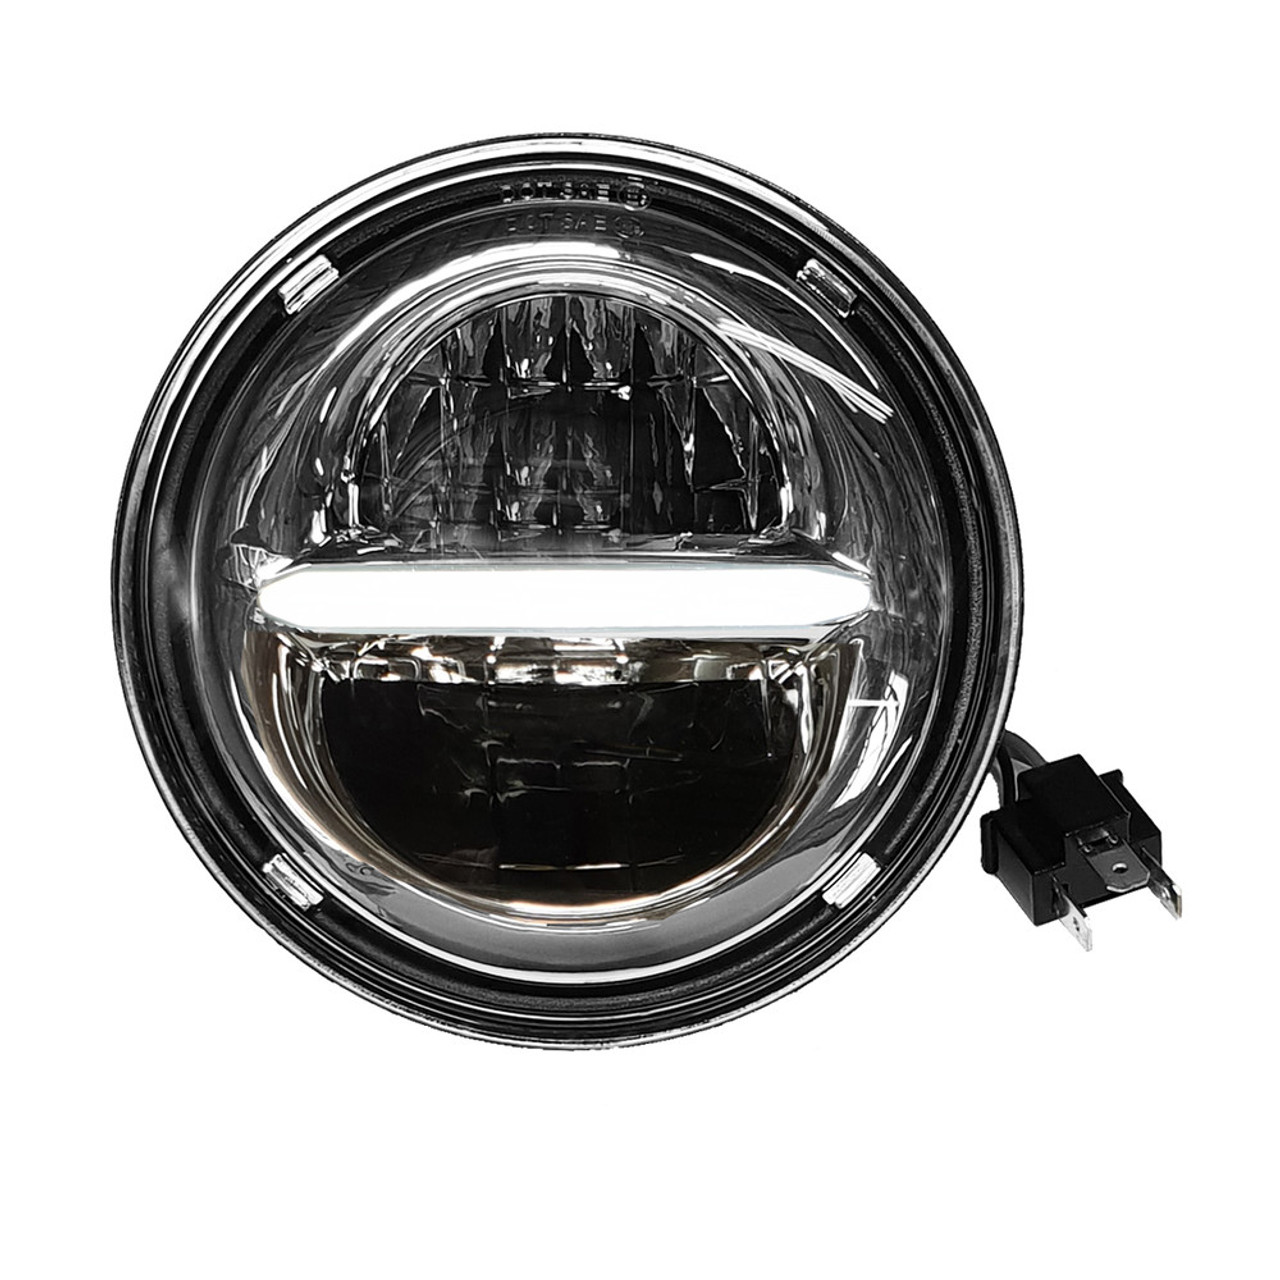 small resolution of pathfinderled chrome 7 in classic headlight w daytime running lights hd7clc